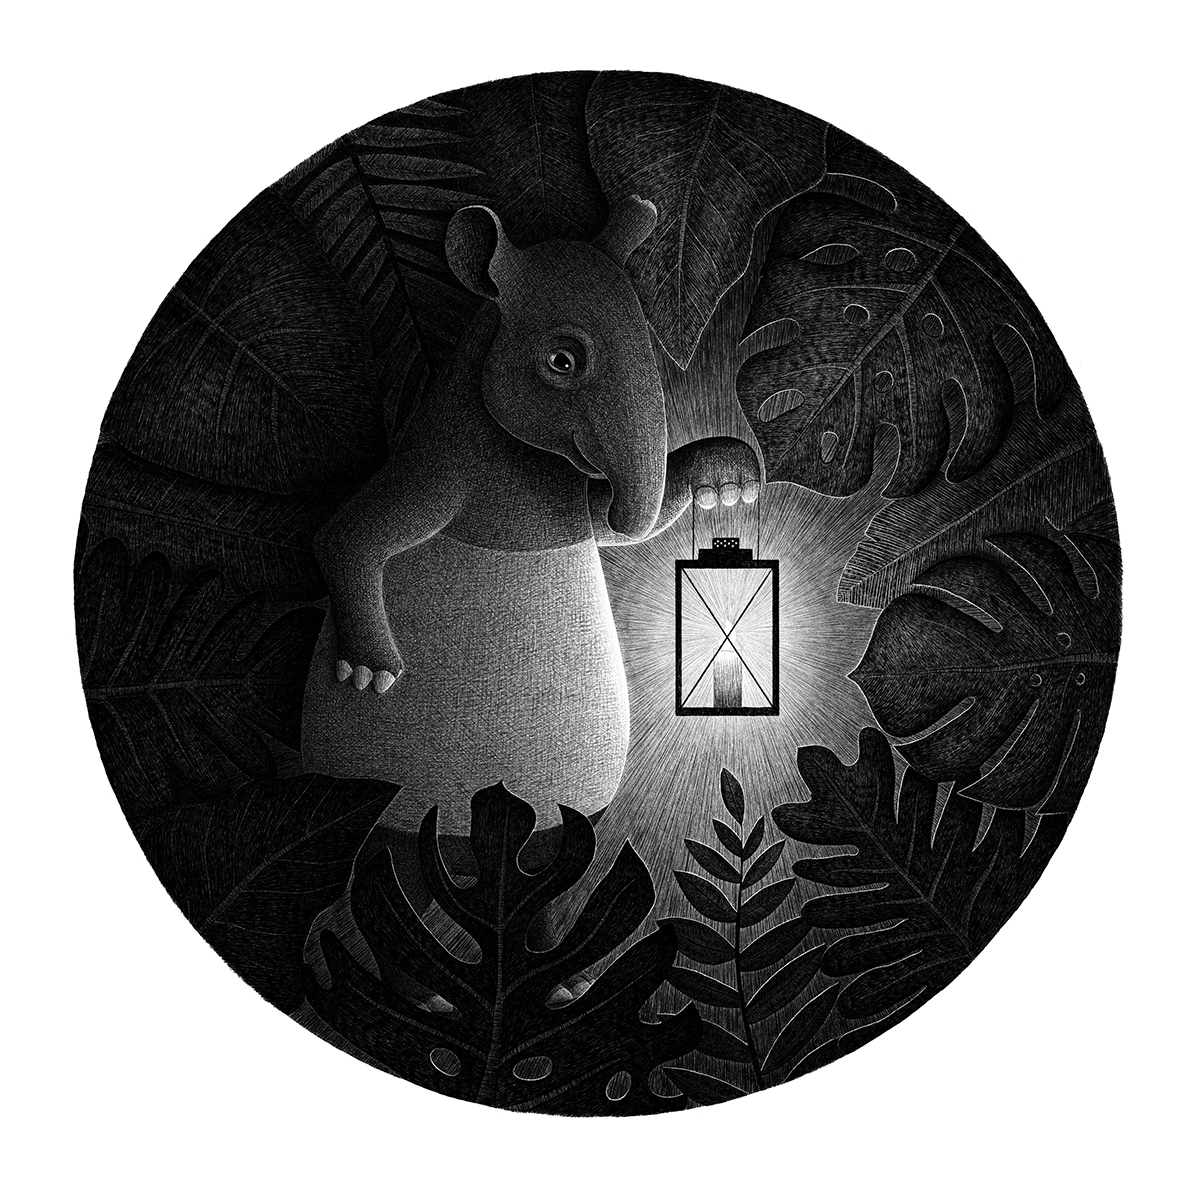 Tapir with candle in the night jungle